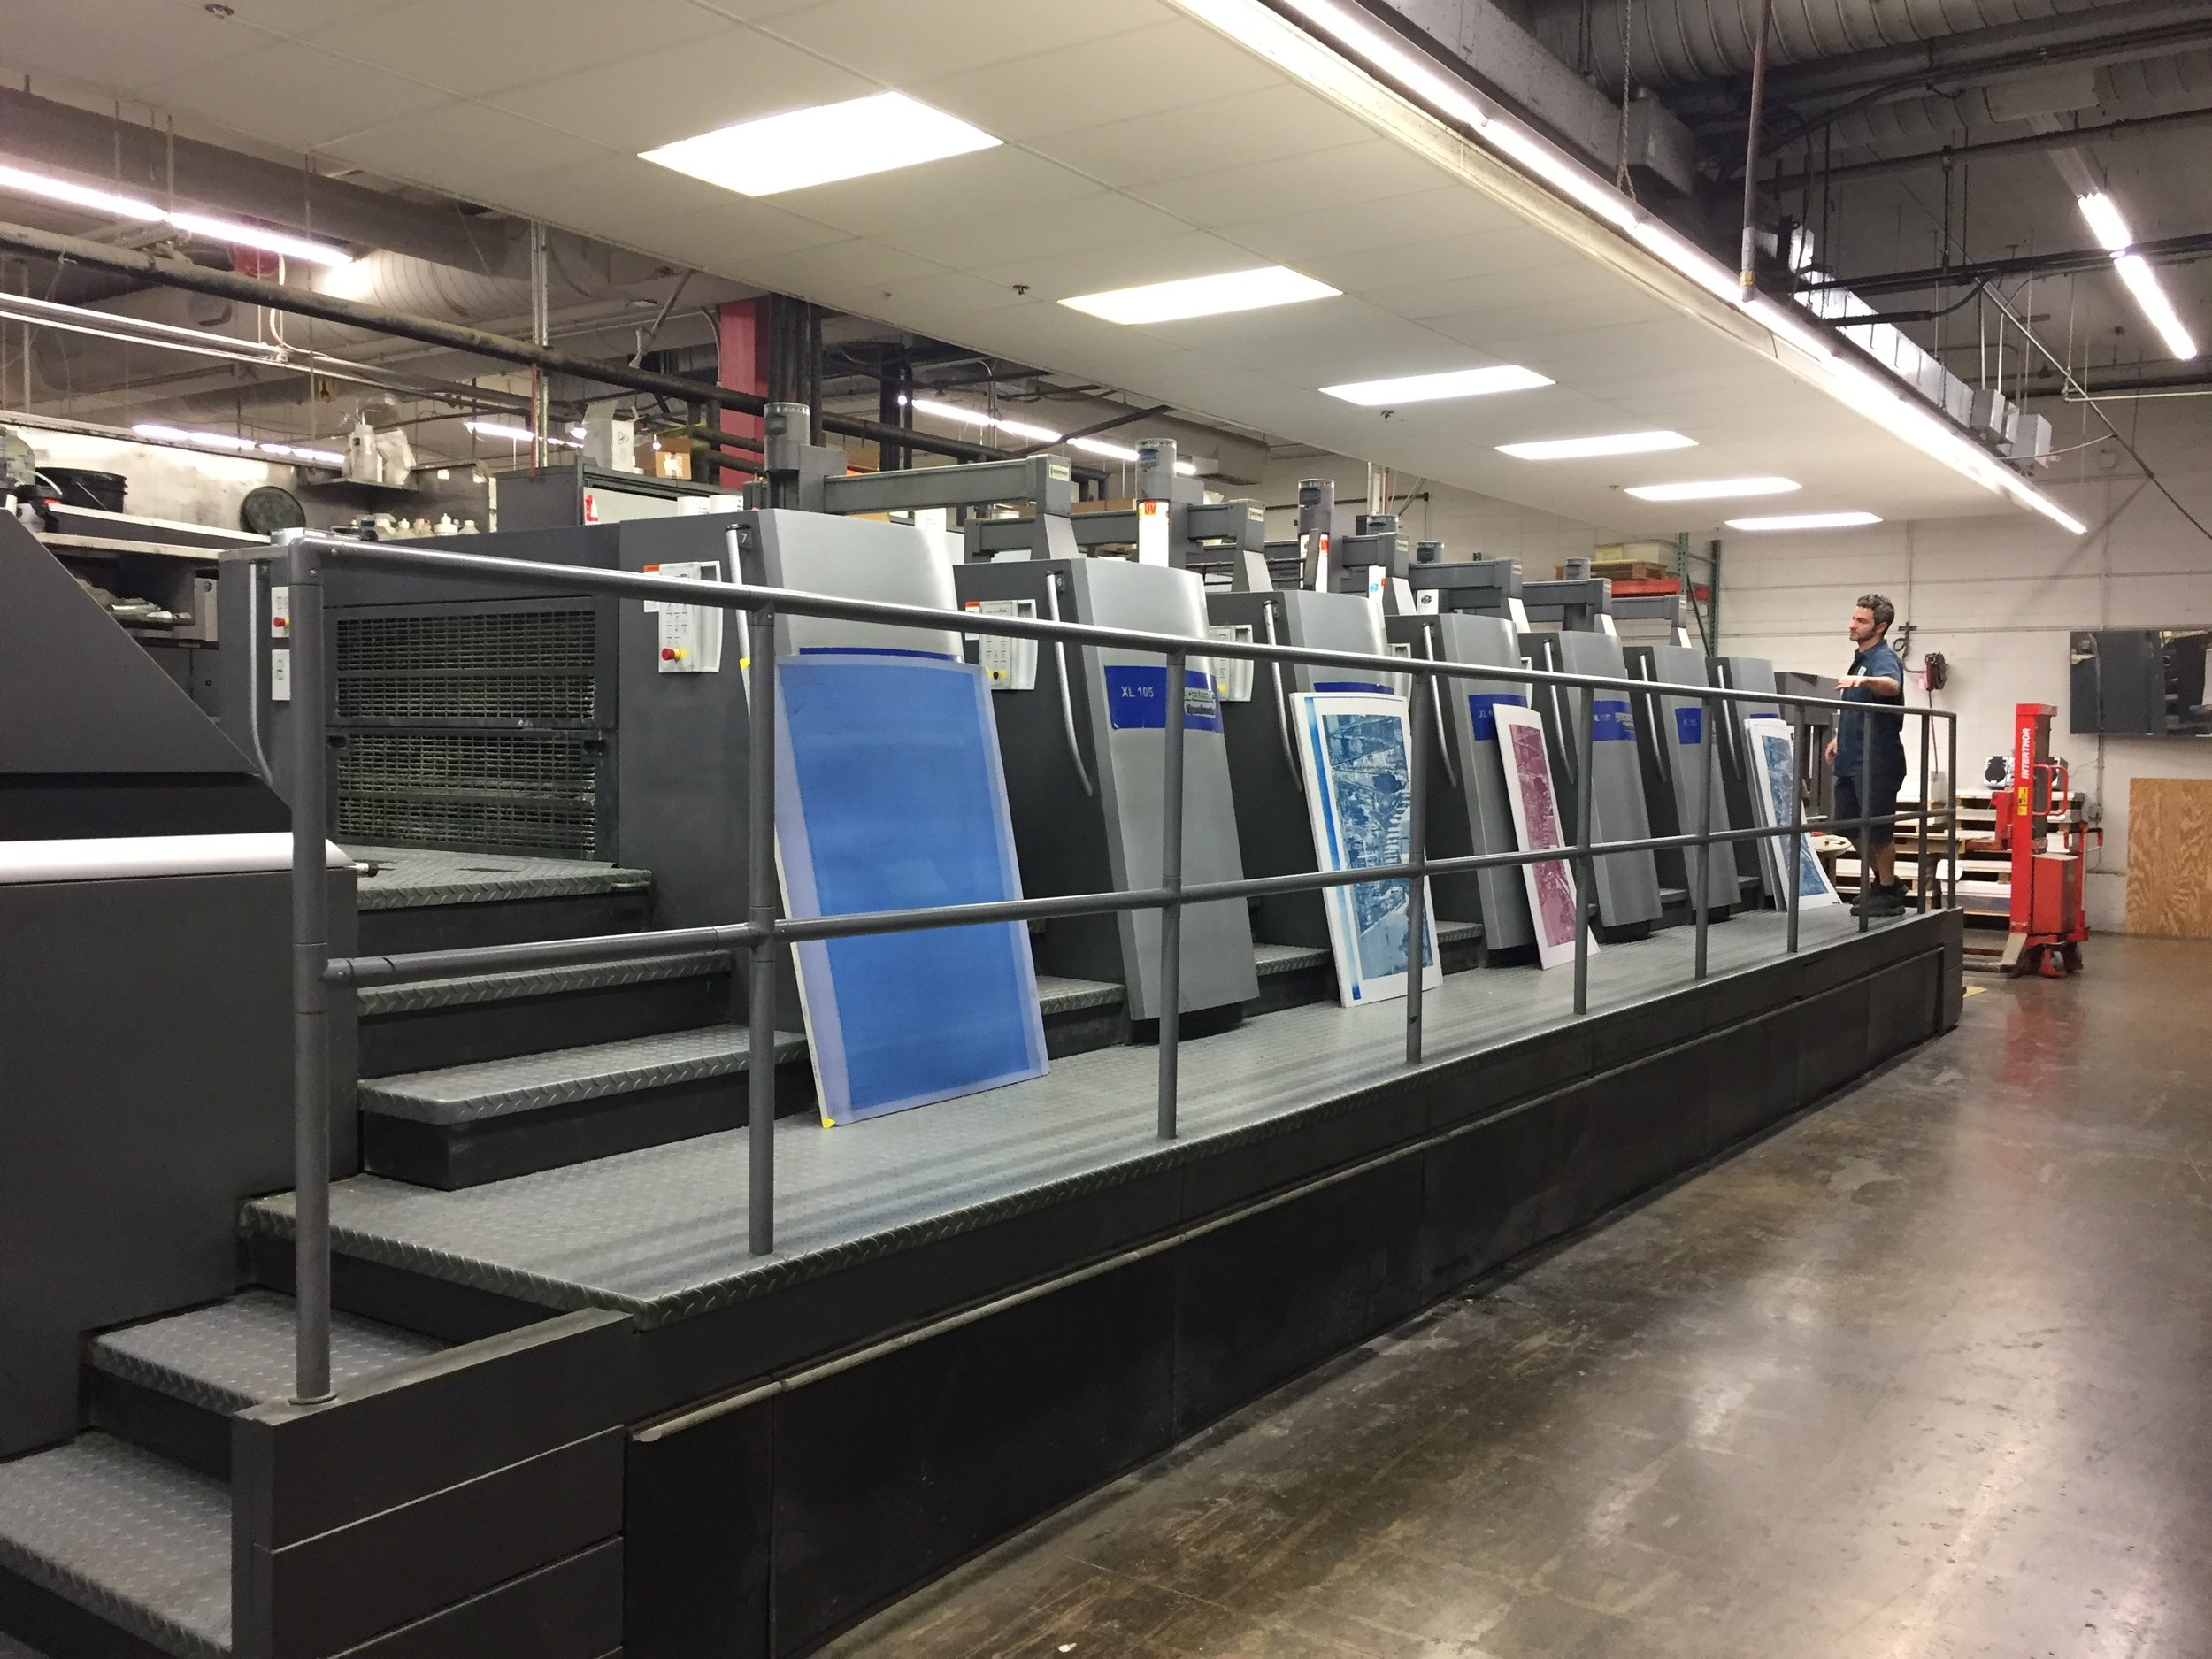 The Heidelberg Press we printed on. Super fun to learn so much! And the name kind of has a ring to it lol ;-)